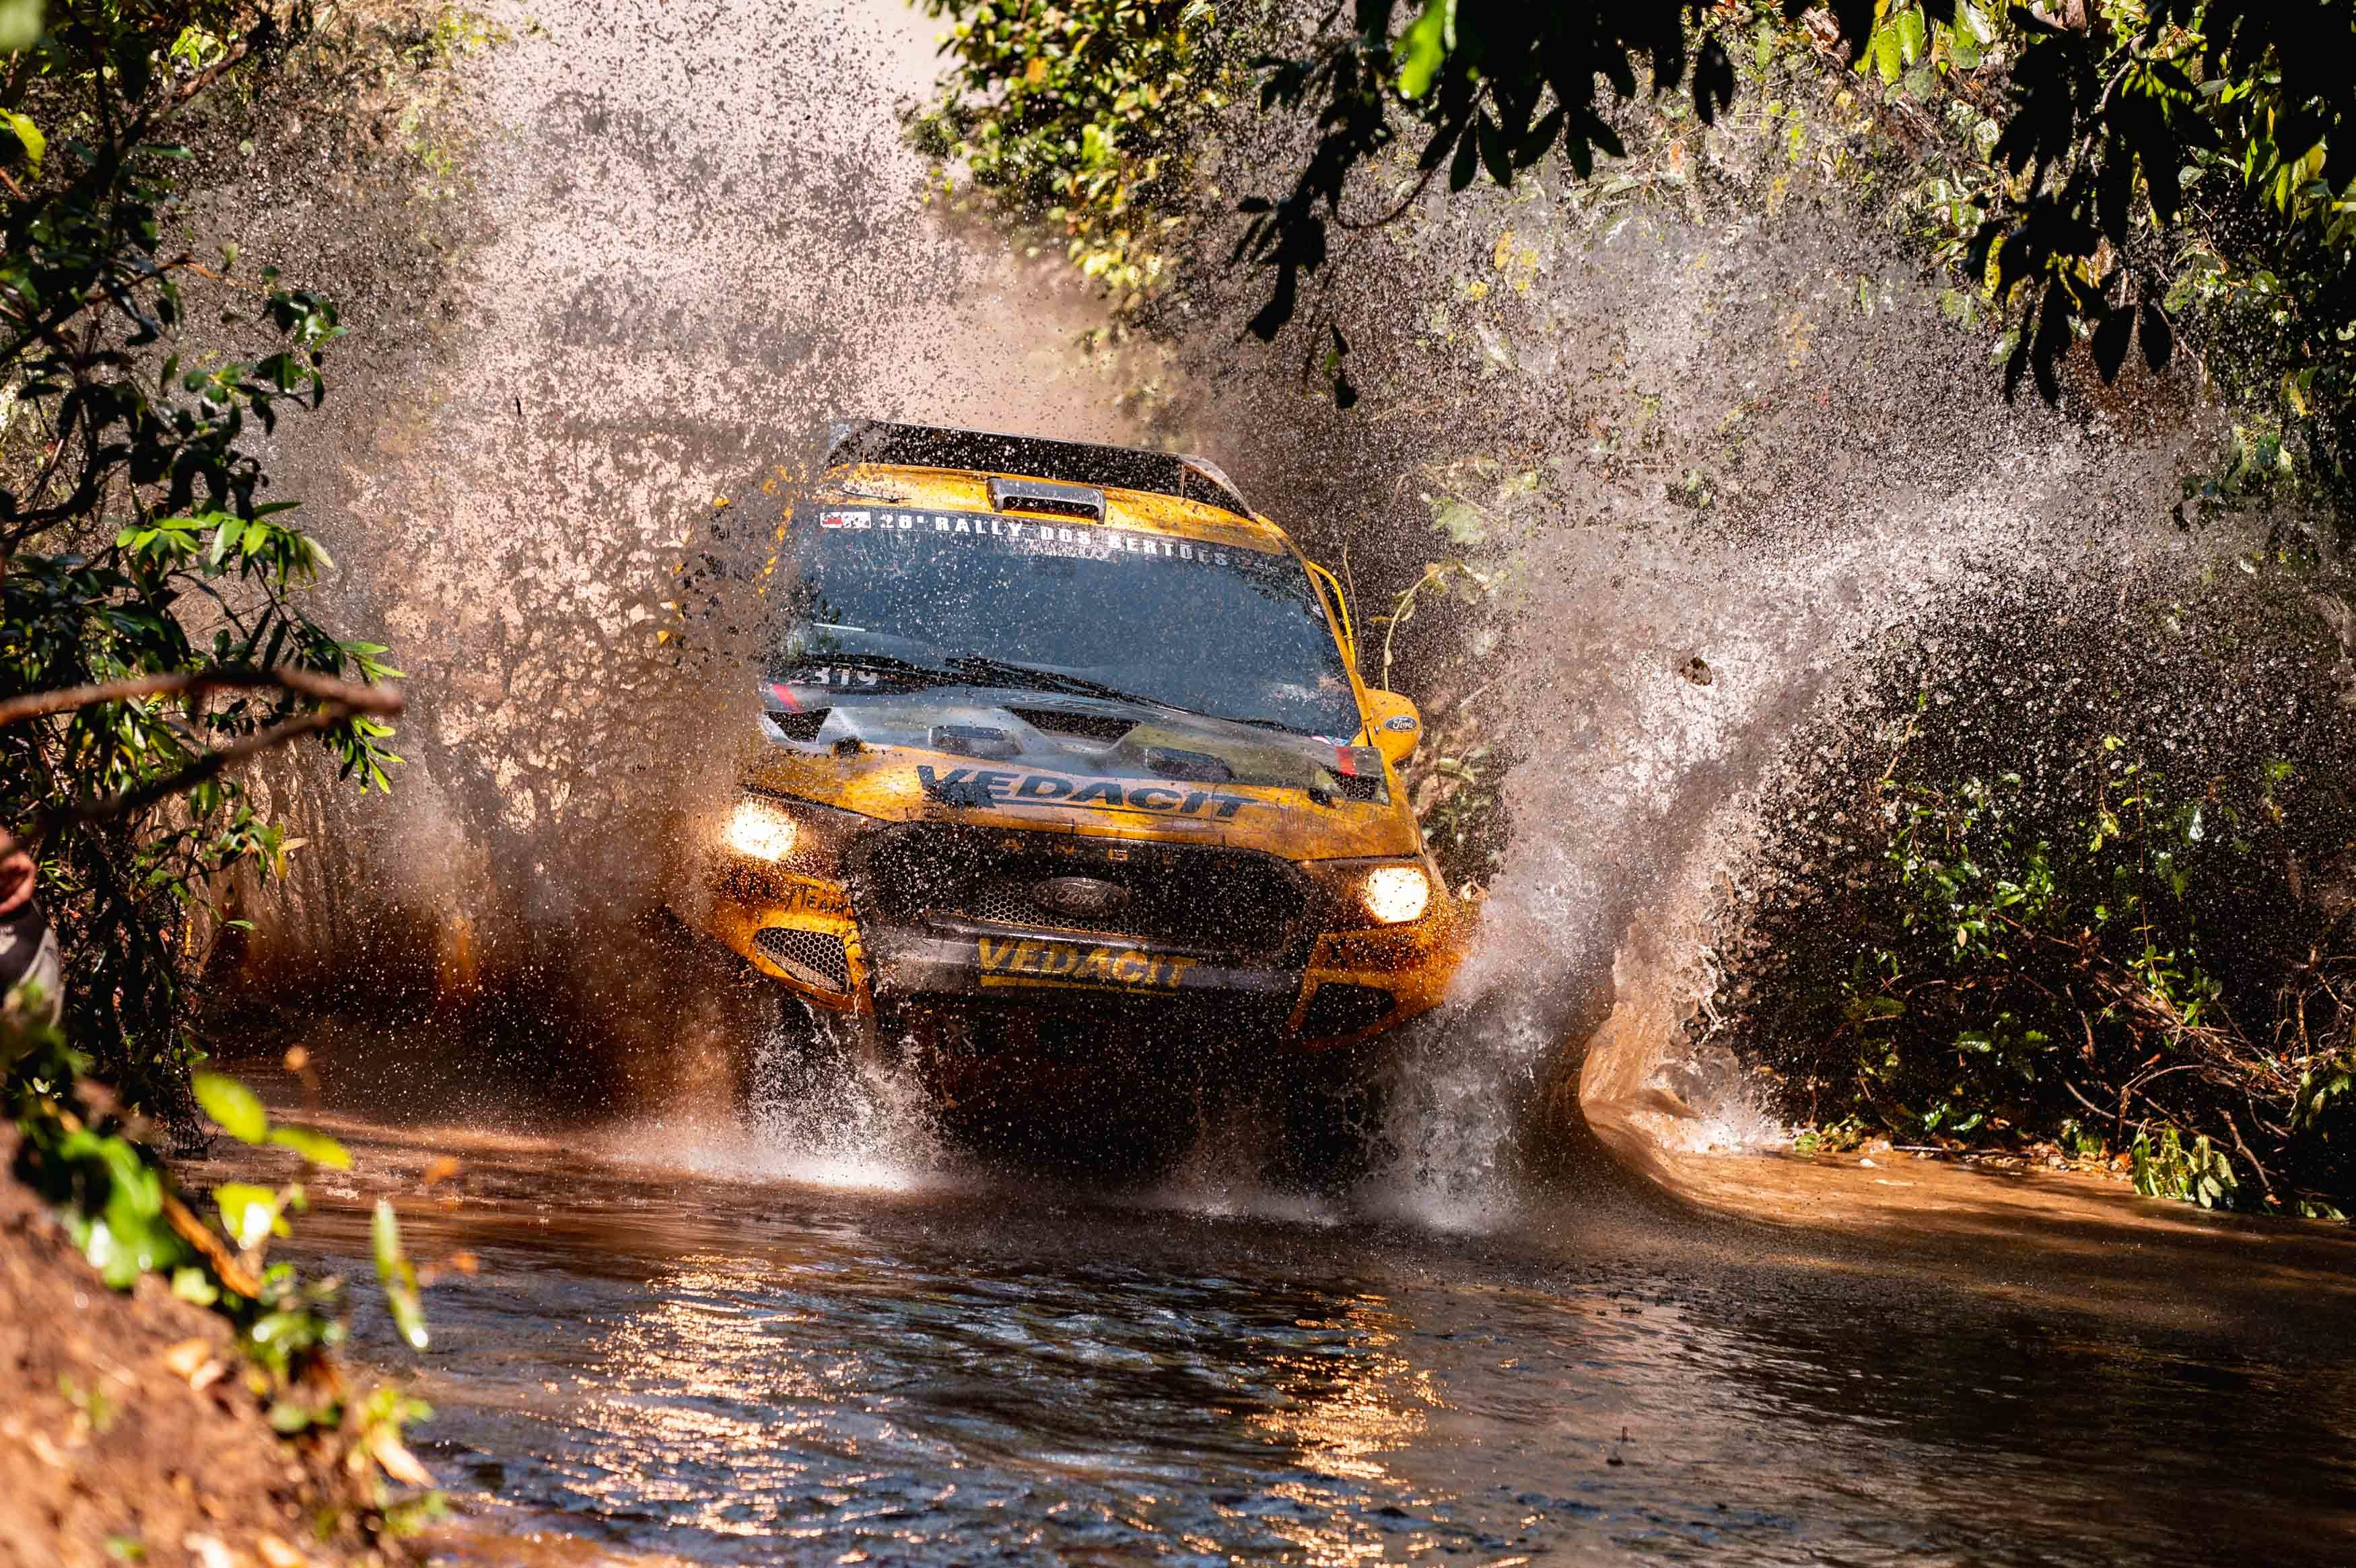 Gareth Woolridge wins stage 3 in the Rally dos Sertões